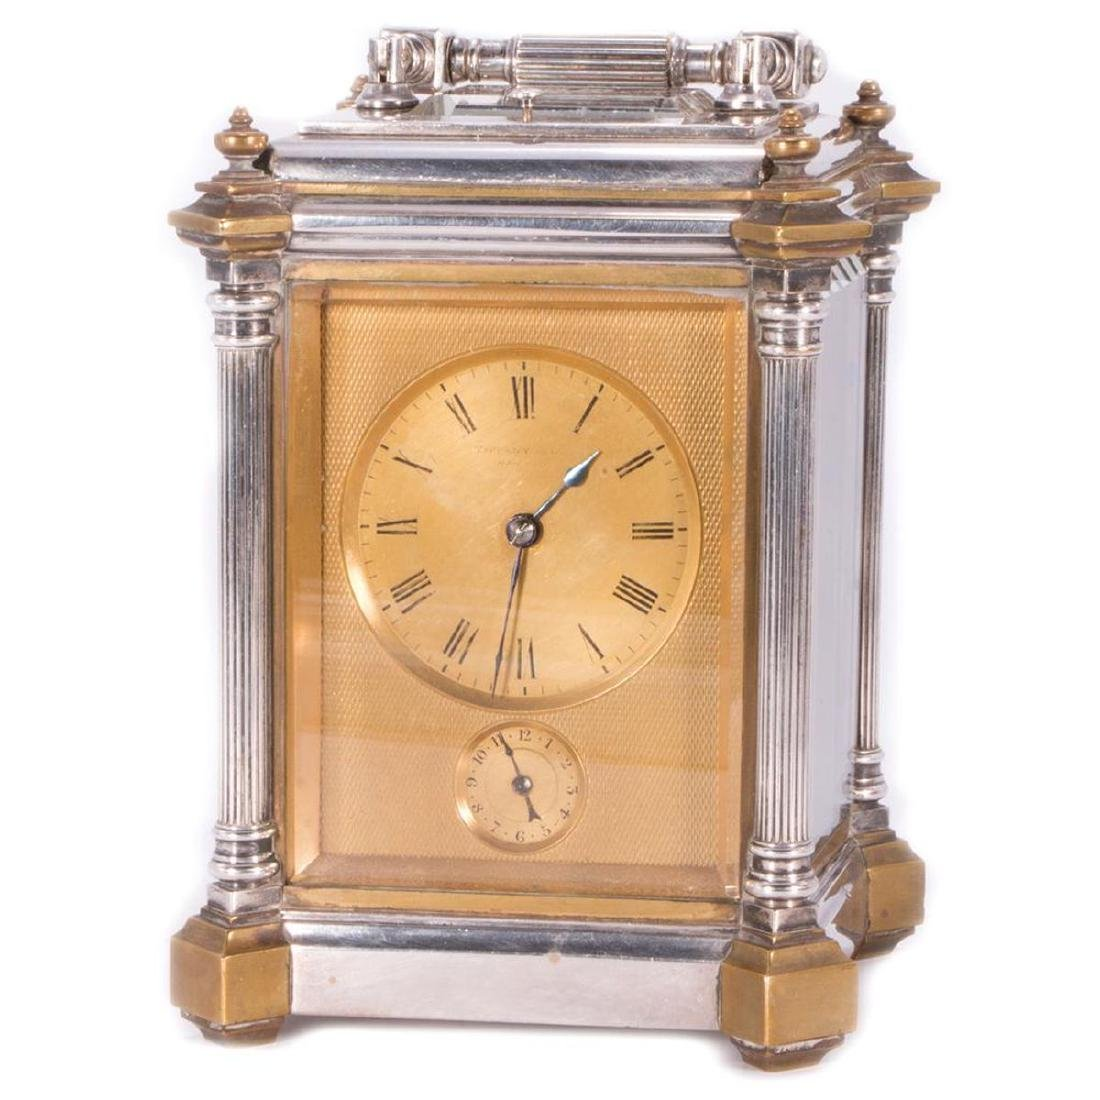 Antique Tiffany & Co Carriage Clock with it's original